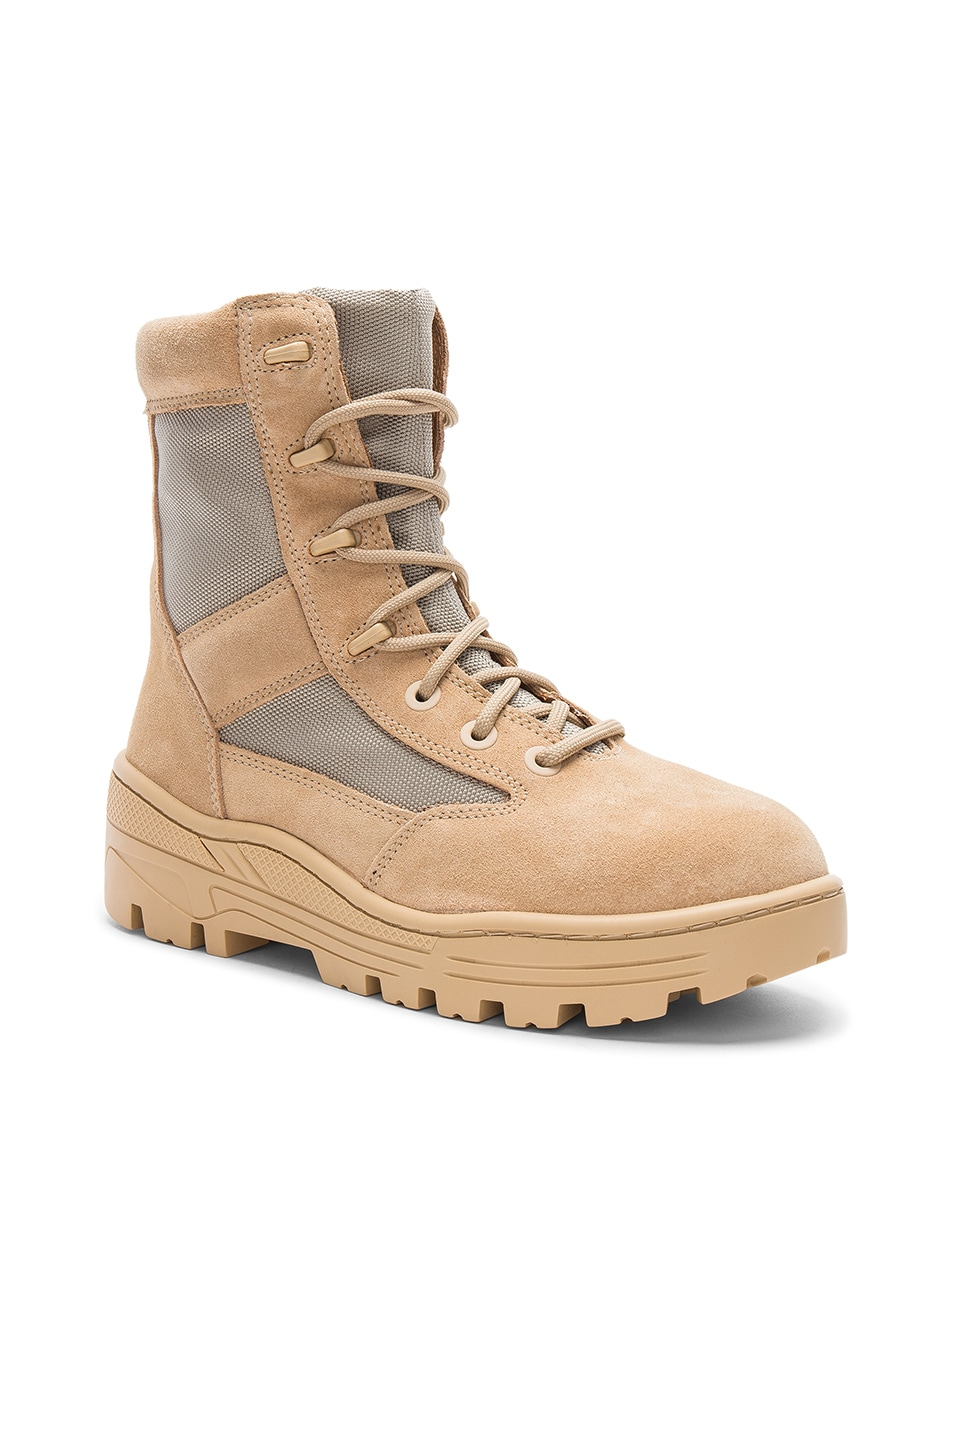 e20f5040f Image 1 of YEEZY Season 4 Suede Combat Boots in Sand